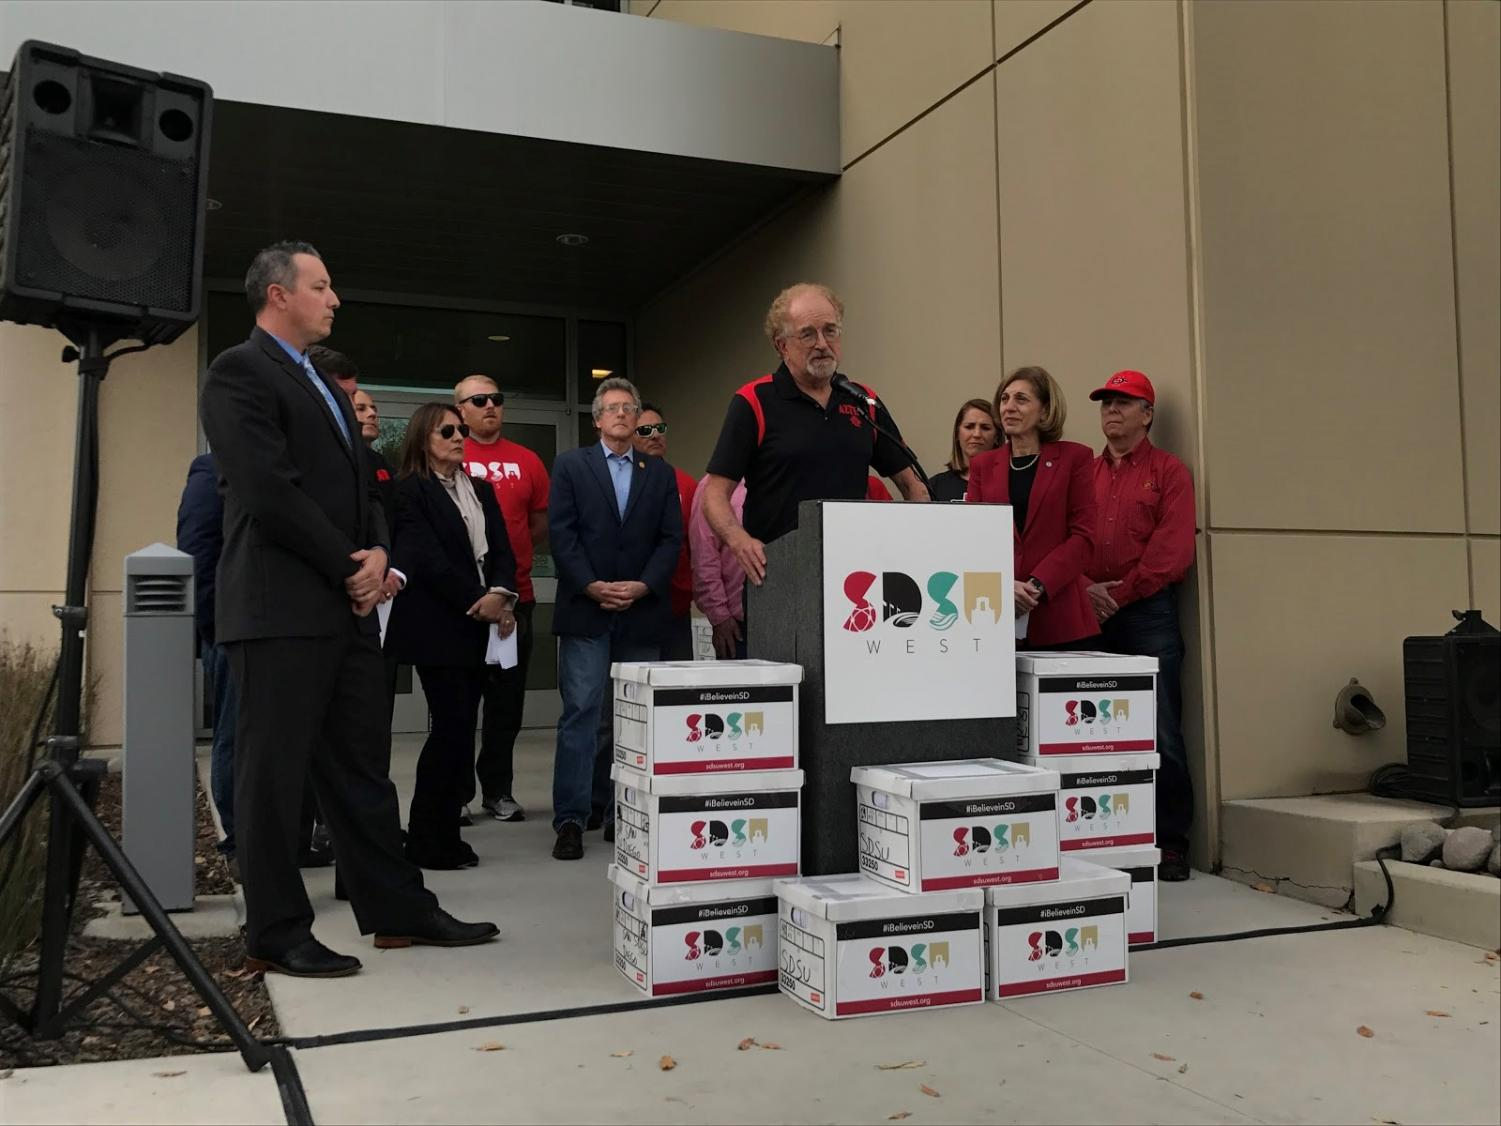 Friends of SDSU steering committee member Bill Hammit speaking at a signature turn-in event at the San Diego County Registrar of Voters office on Tuesday, Jan. 16.